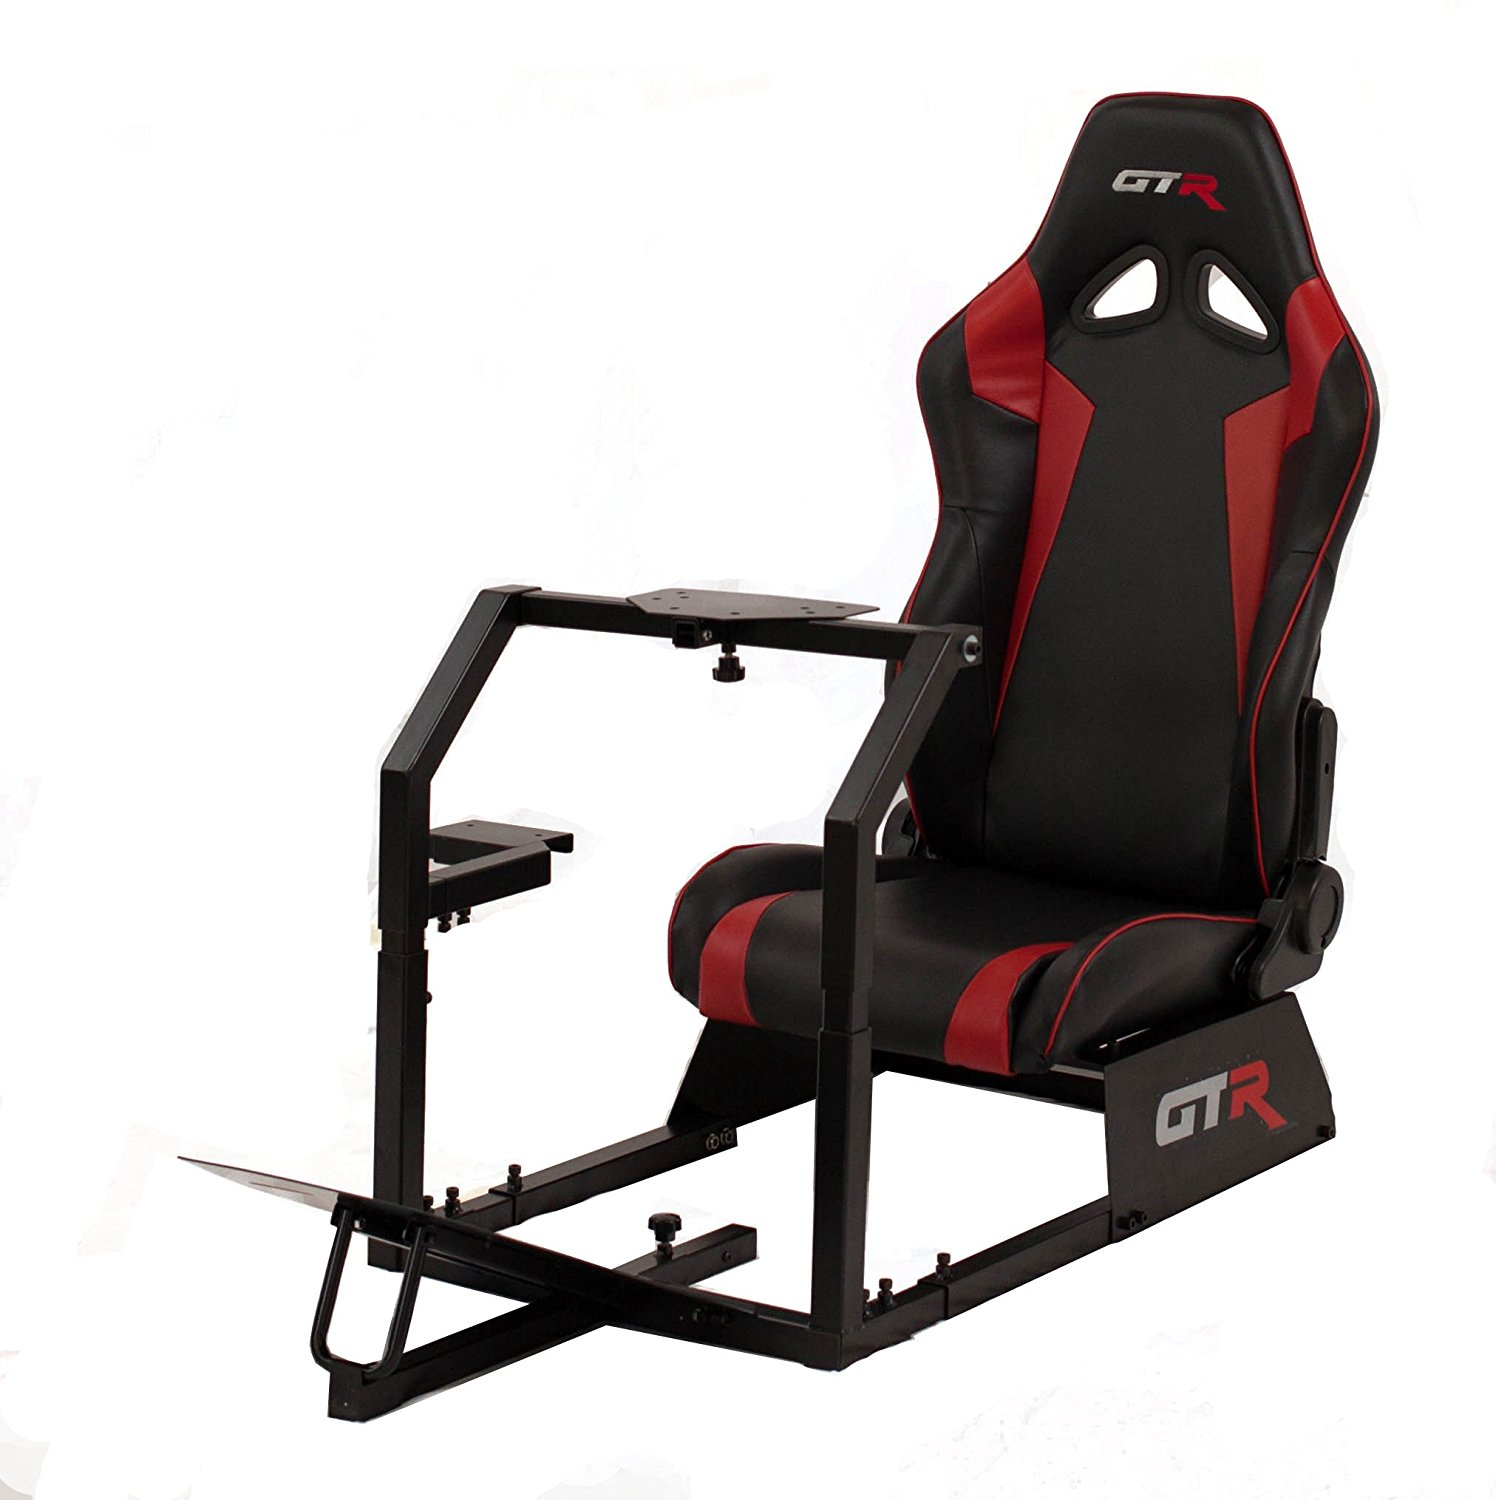 GTR Racing Simulator GTA-BLK-S105LBLKRD GTA 2017 Model Black Frame with Black/Red Real Racing Seat, Driving Simulator Cockpit Gaming Chair with Gear Shifter Mount